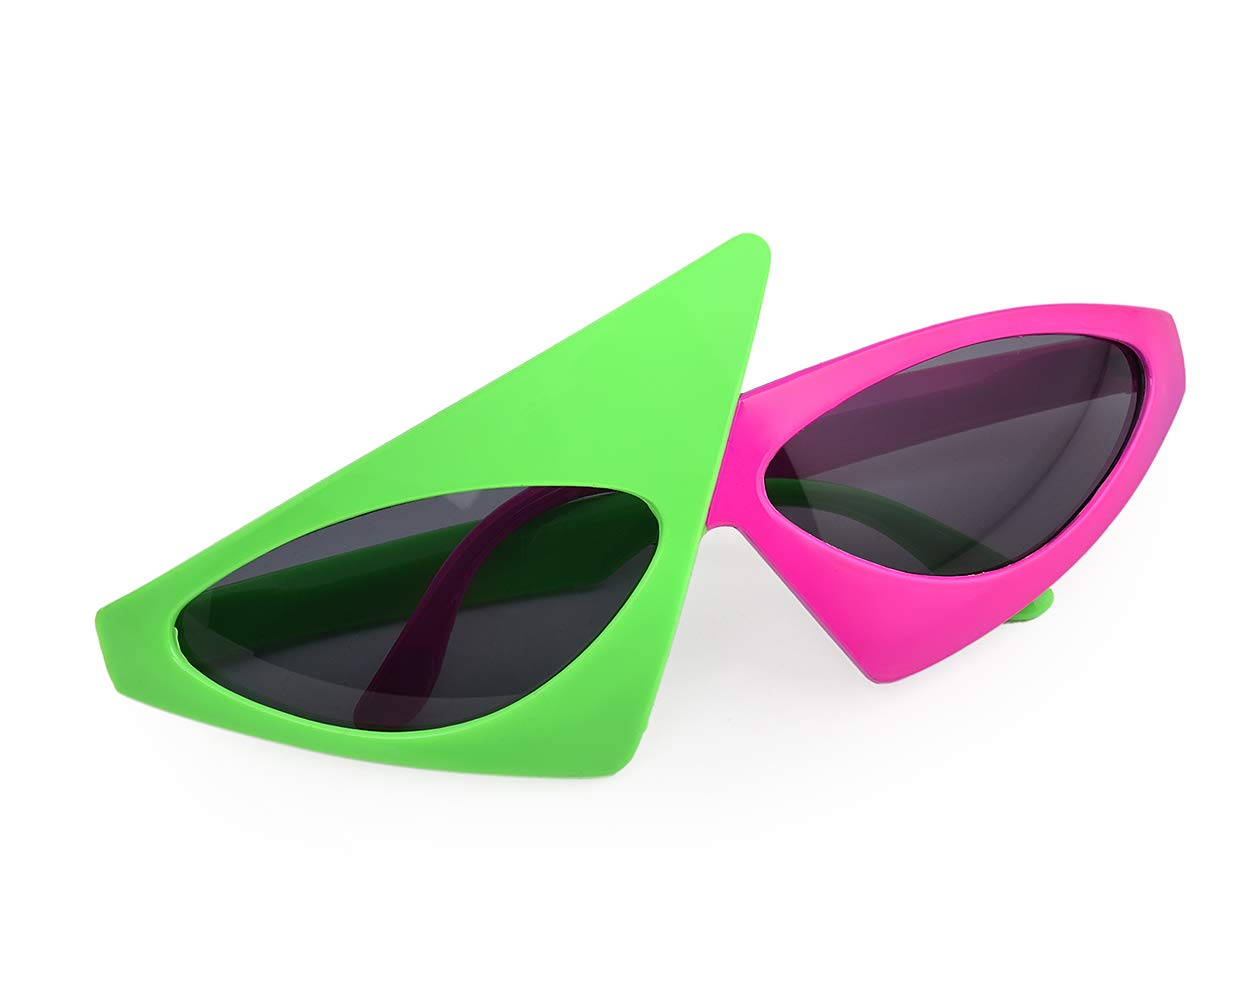 48d9387a48149 Amazon.com  PLAY BLING Novelty Party Sunglasses 80s Asymmetric Glasses Hot  Pink and Neon Green Glasses Hip Hop Dance Halloween Party  Toys   Games